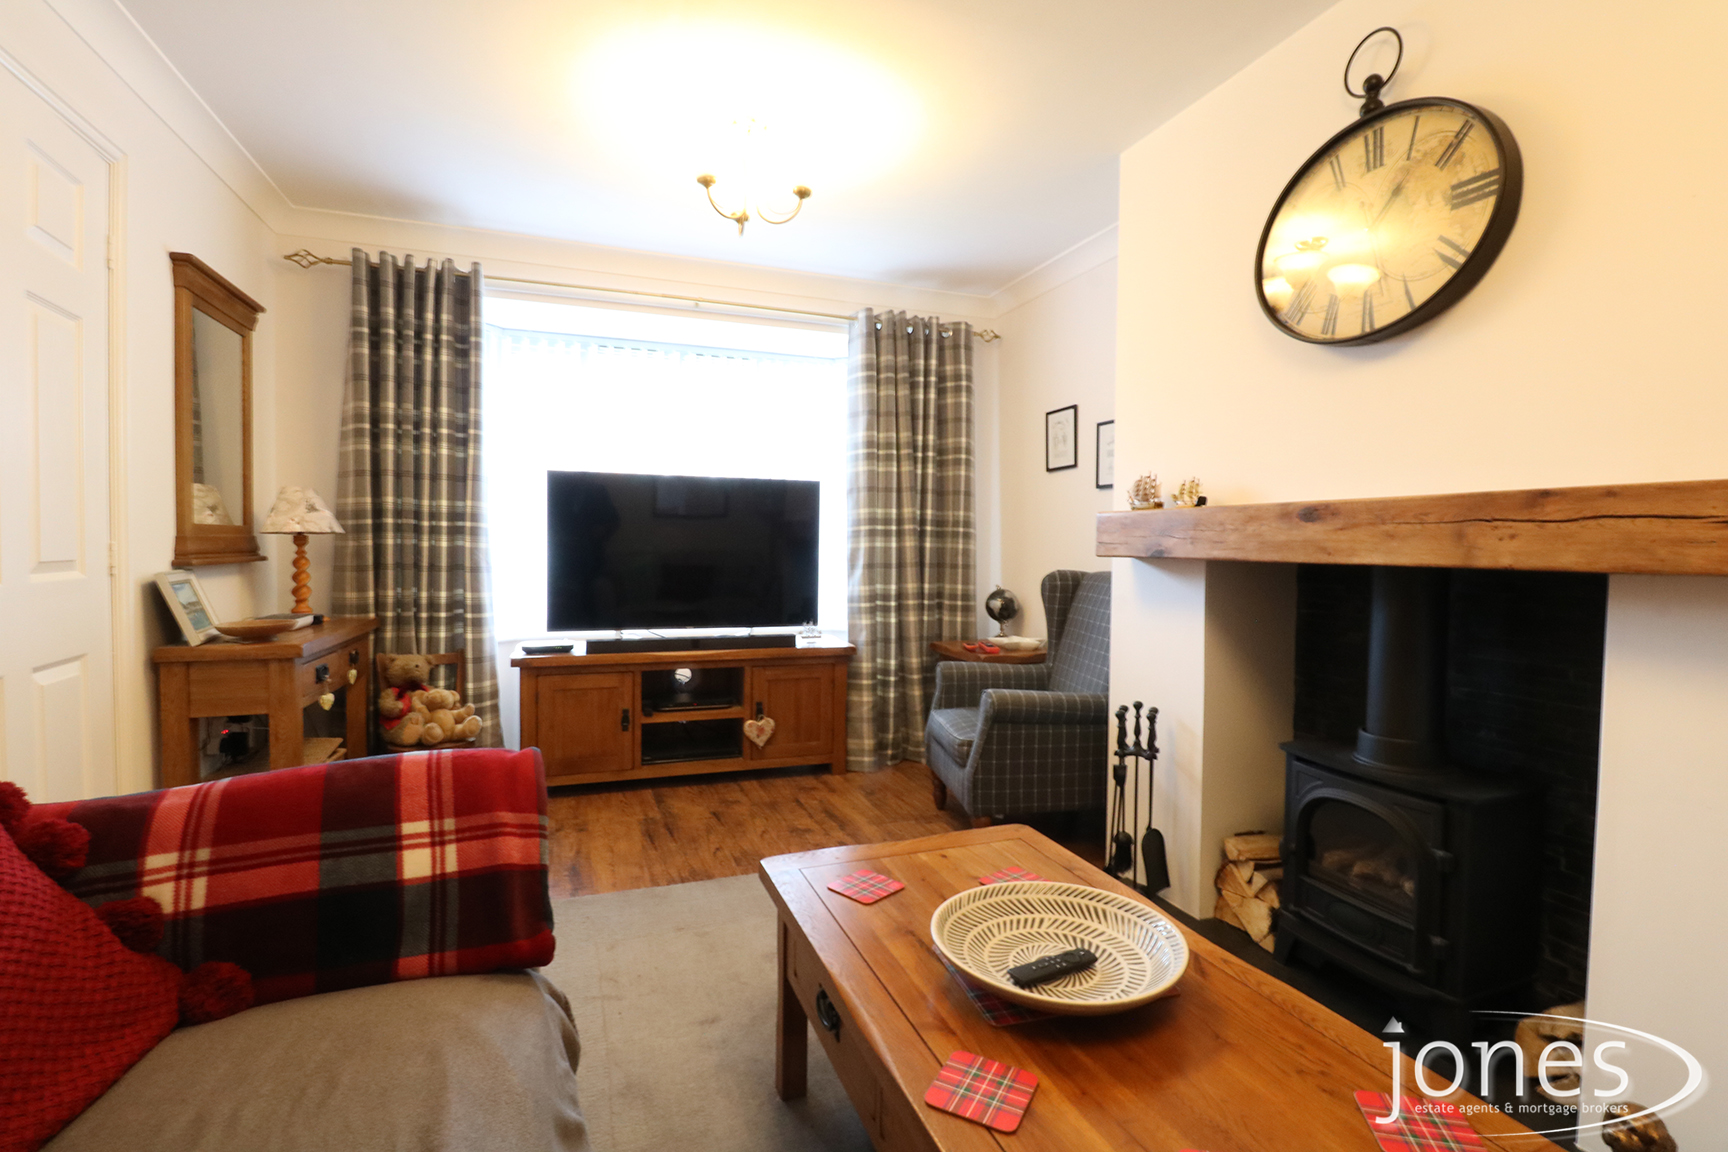 Home for Sale Let - Photo 02 West End Way , Low Hartburn,Stockton on Tees,TS18 3UA